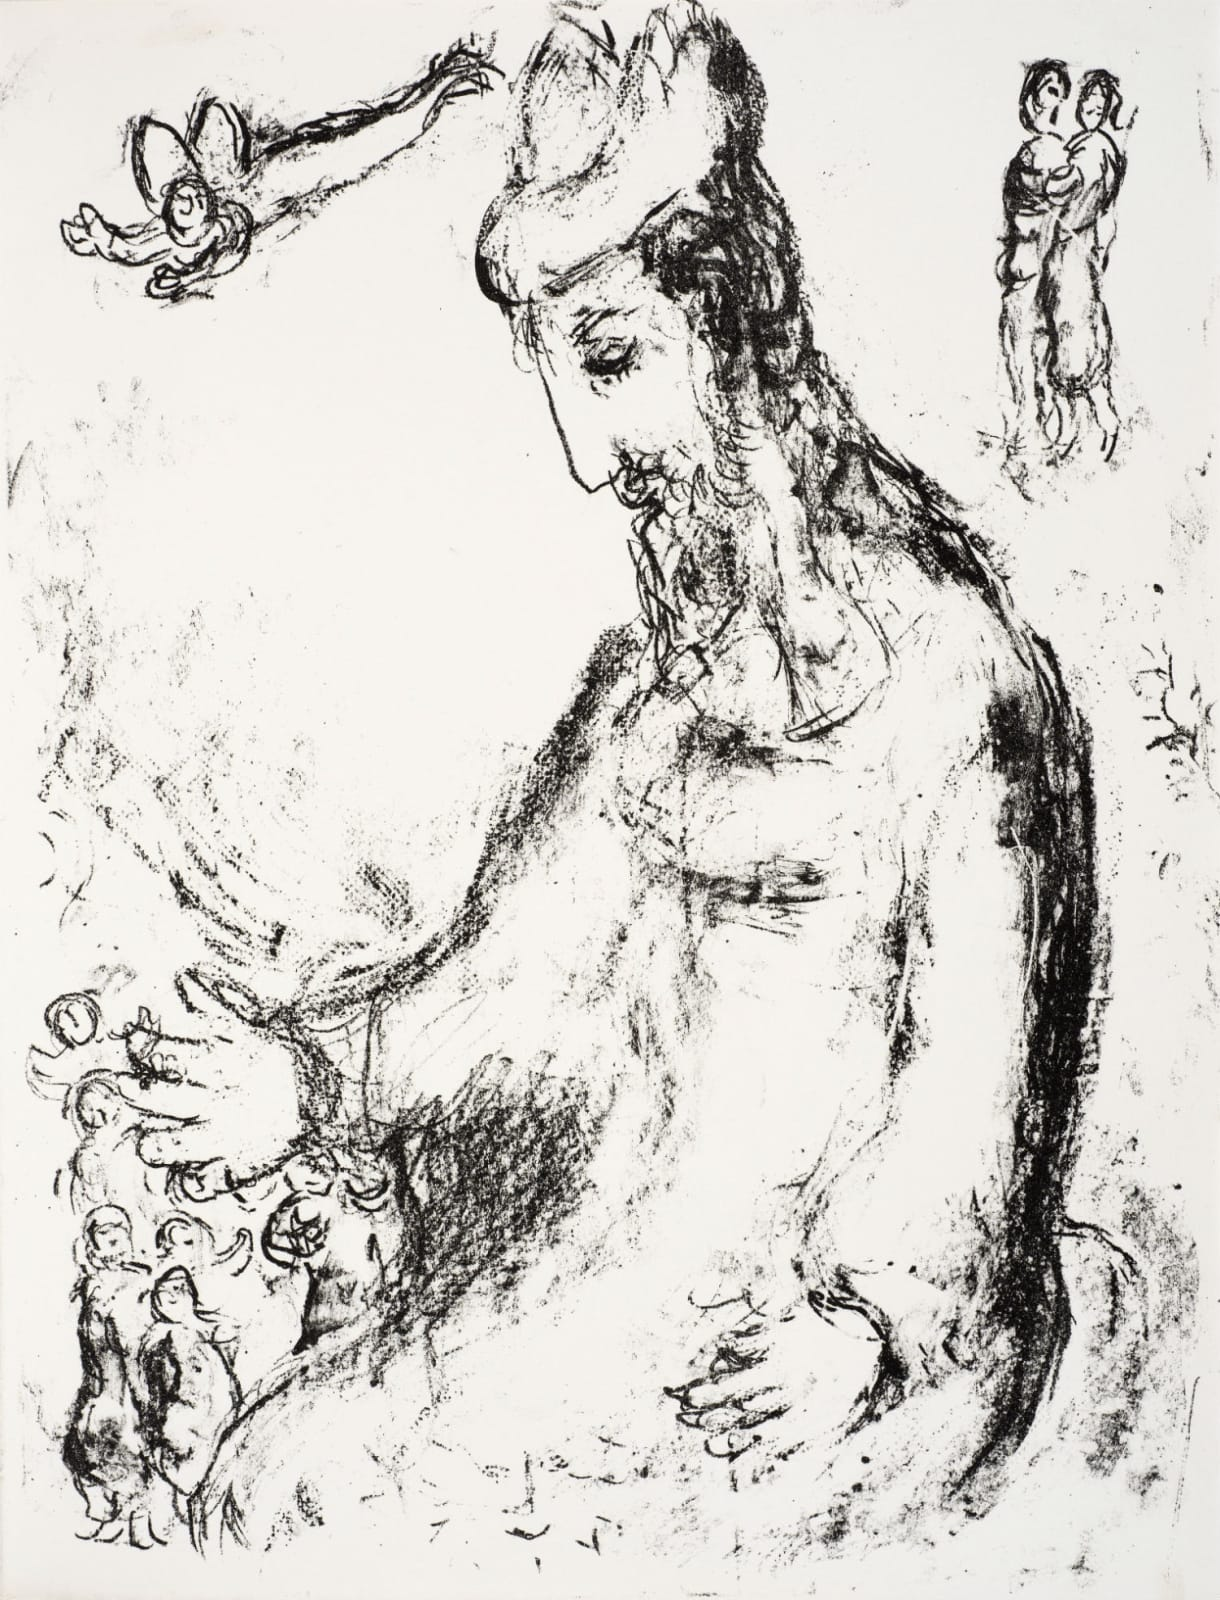 Marc Chagall (1887-1985) Prospero's Blessing (Series: Shakespeare The Tempest) 1975 Lithograph 42.5 x 32.5 cm Ben Uri Collection © Marc Chagall estate To see and discover more about this artist click here